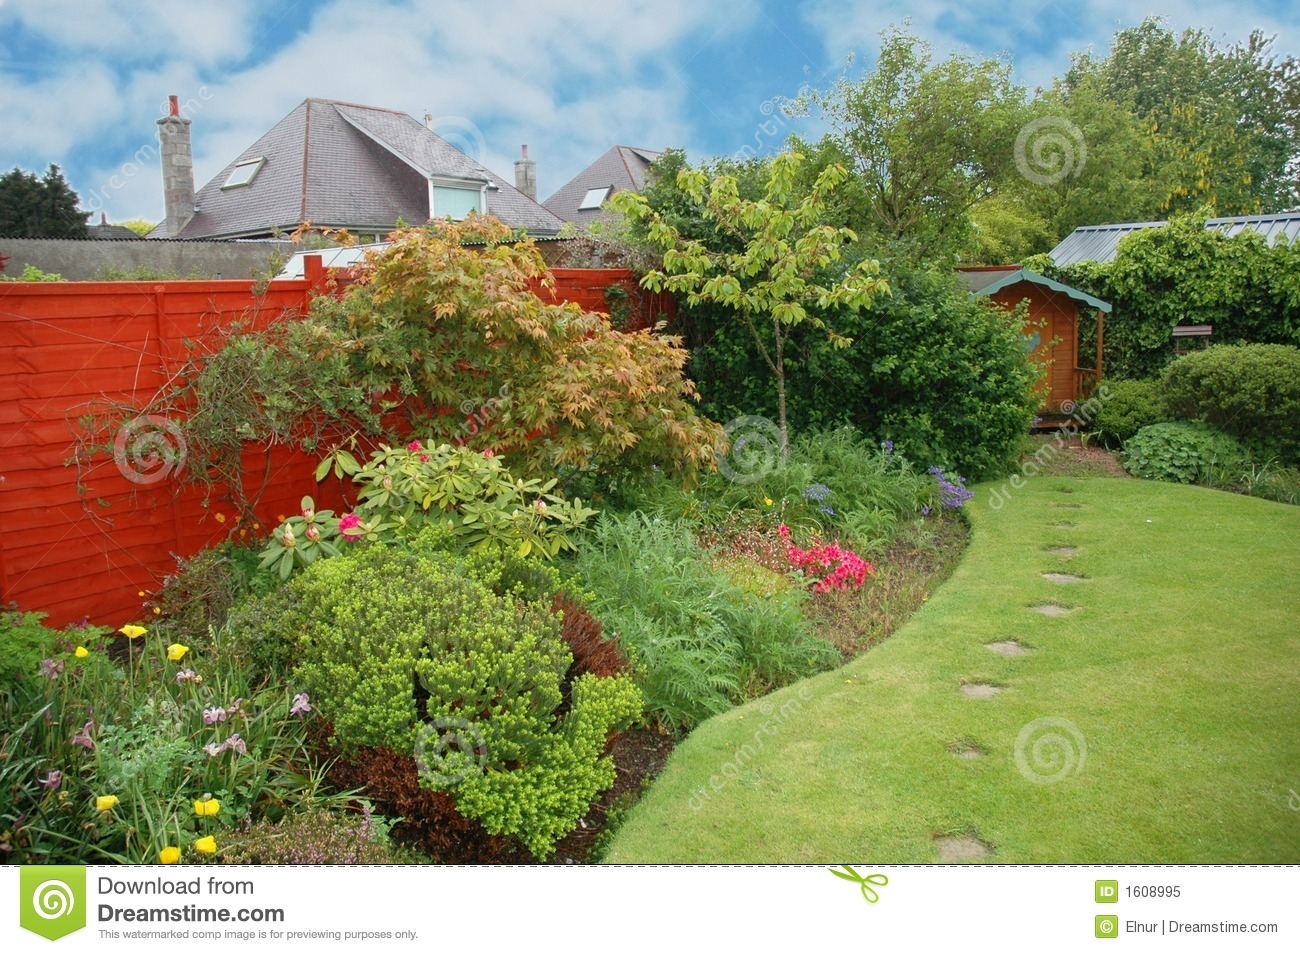 Nice Garden With Flowers Royalty Free Stock Photo - Image: 1608995